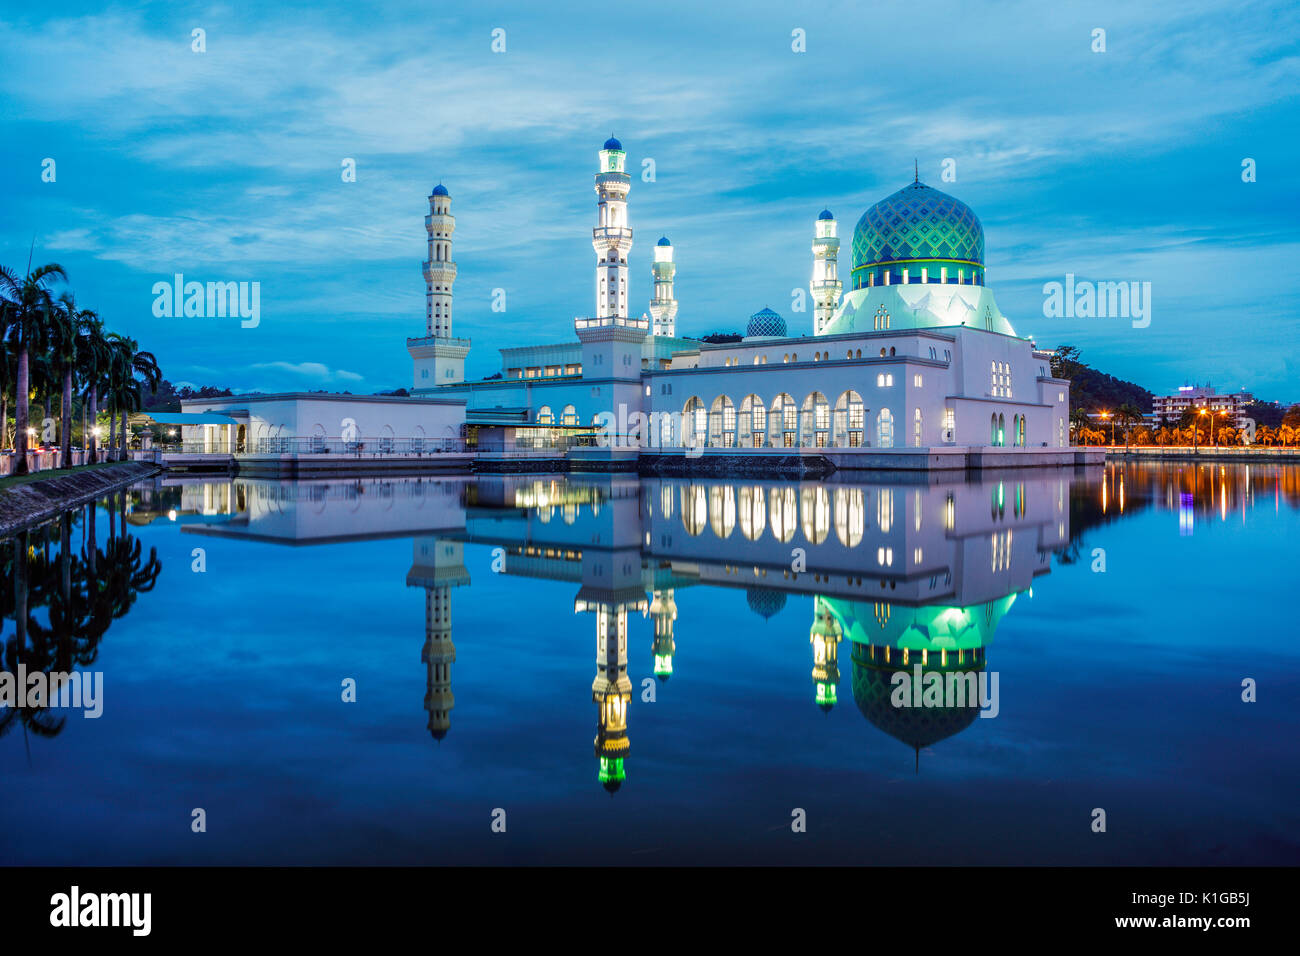 The Kota Kinabalu State Mosque during twilight. - Stock Image